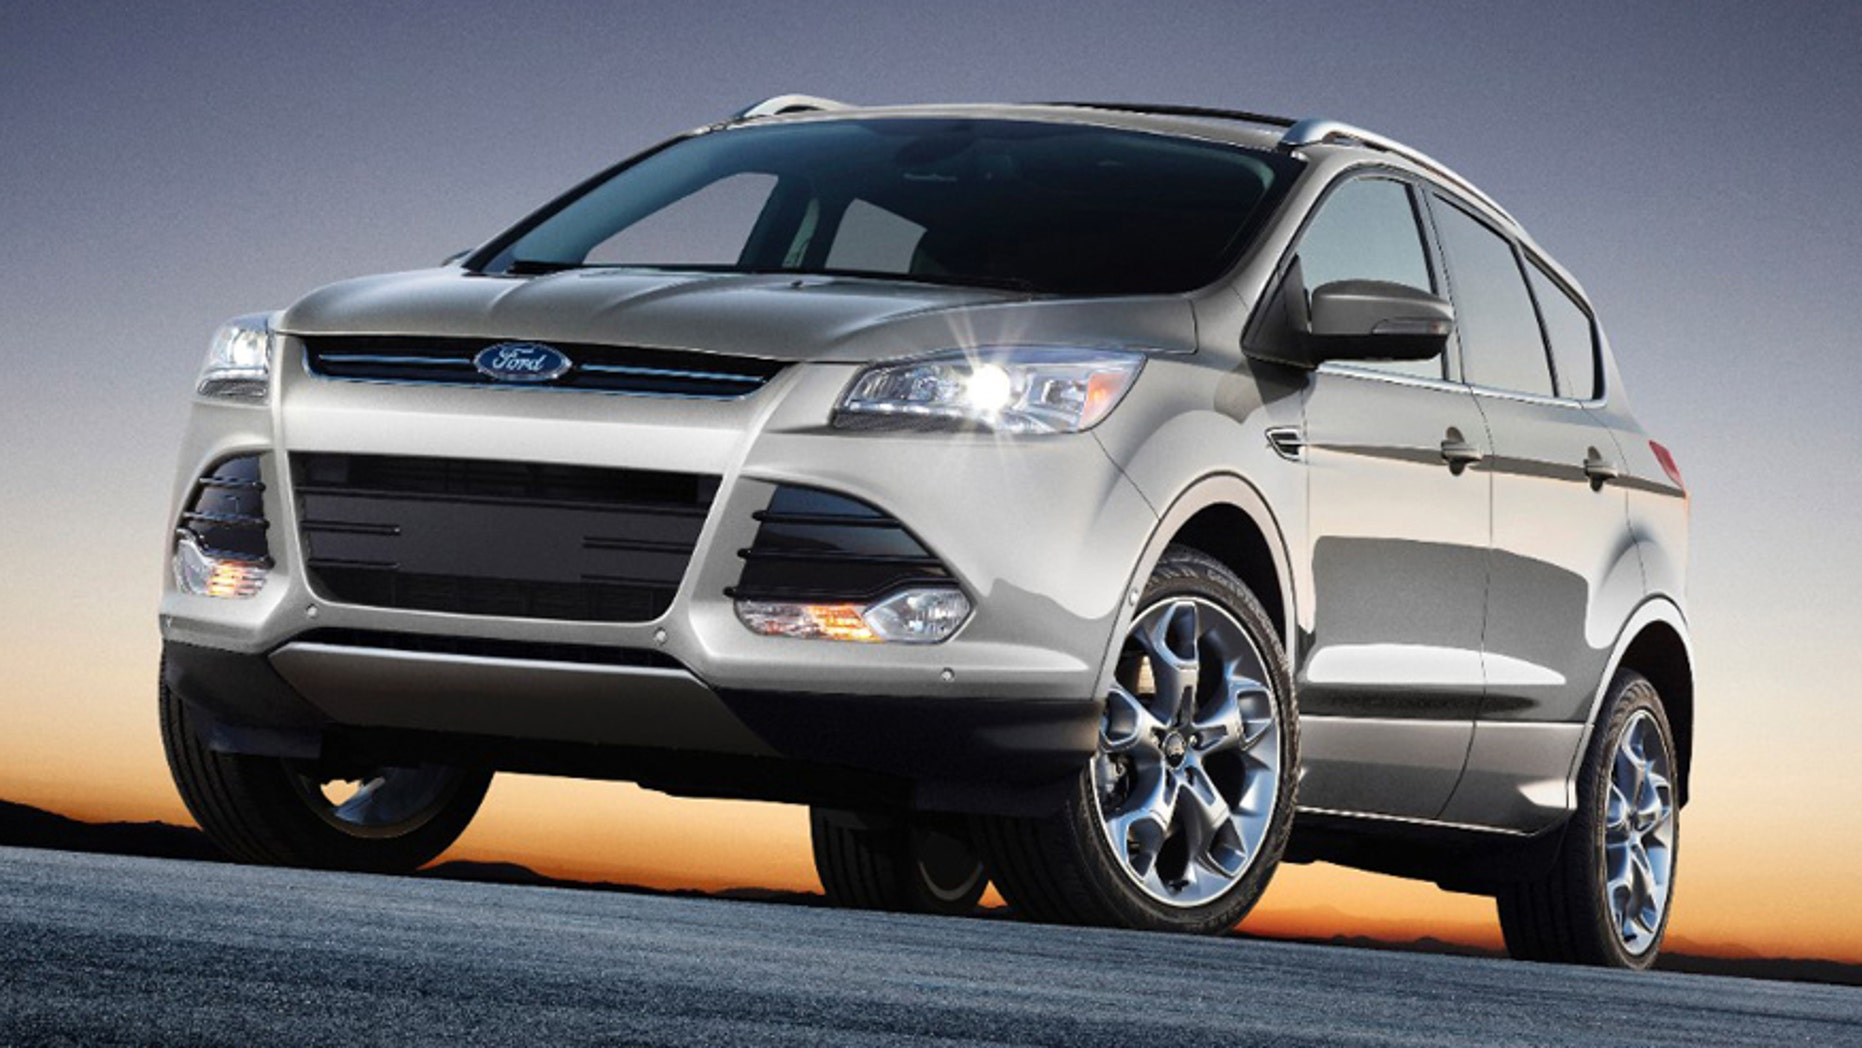 Us Reviews Ford Recall Of Cars Prone To Overheating Fires